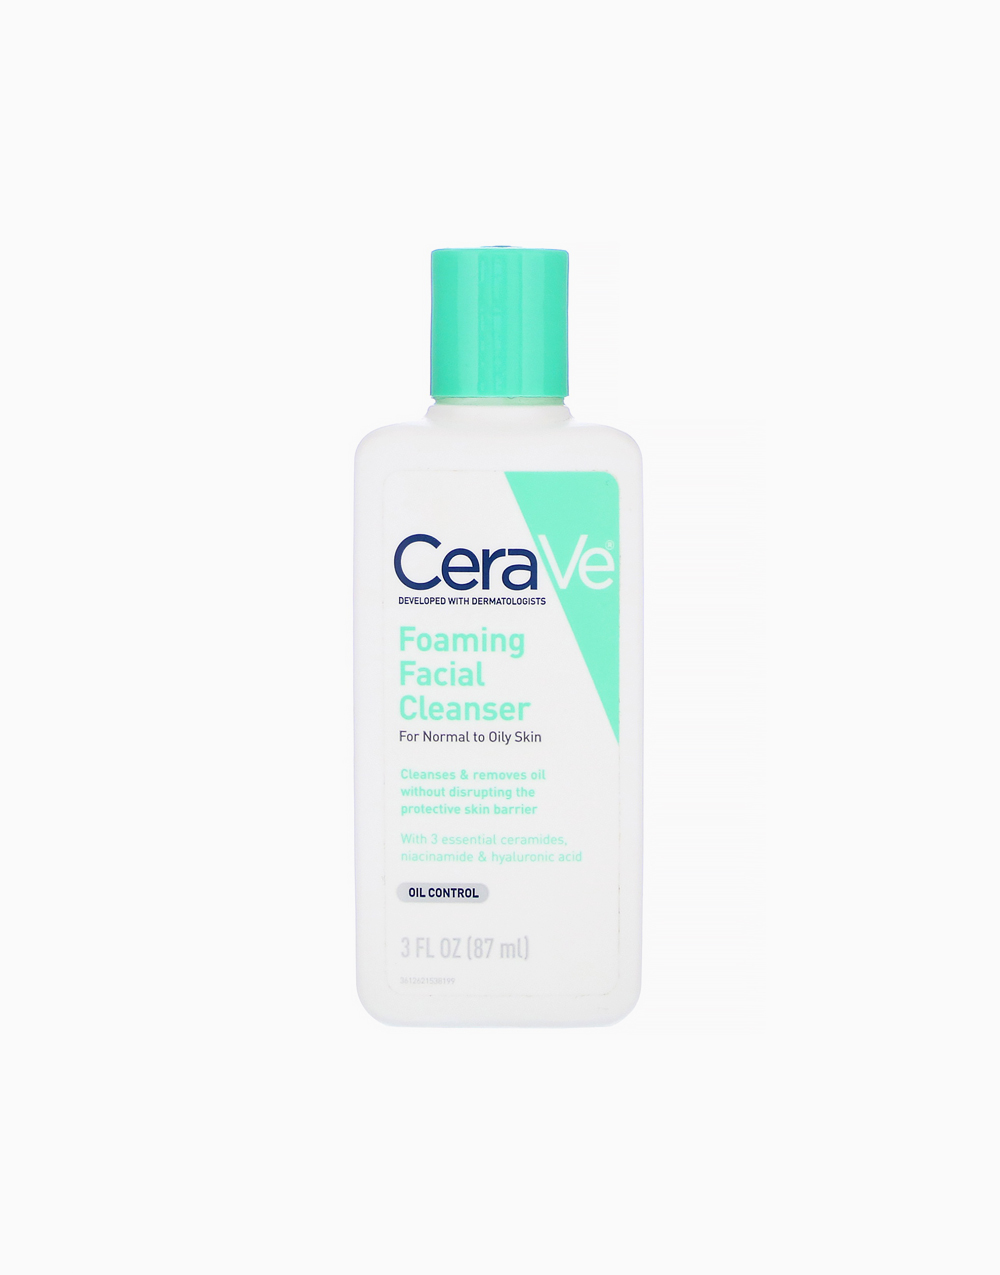 Foaming Facial Cleanser for Normal to Oily Skin (87ml) by CeraVe